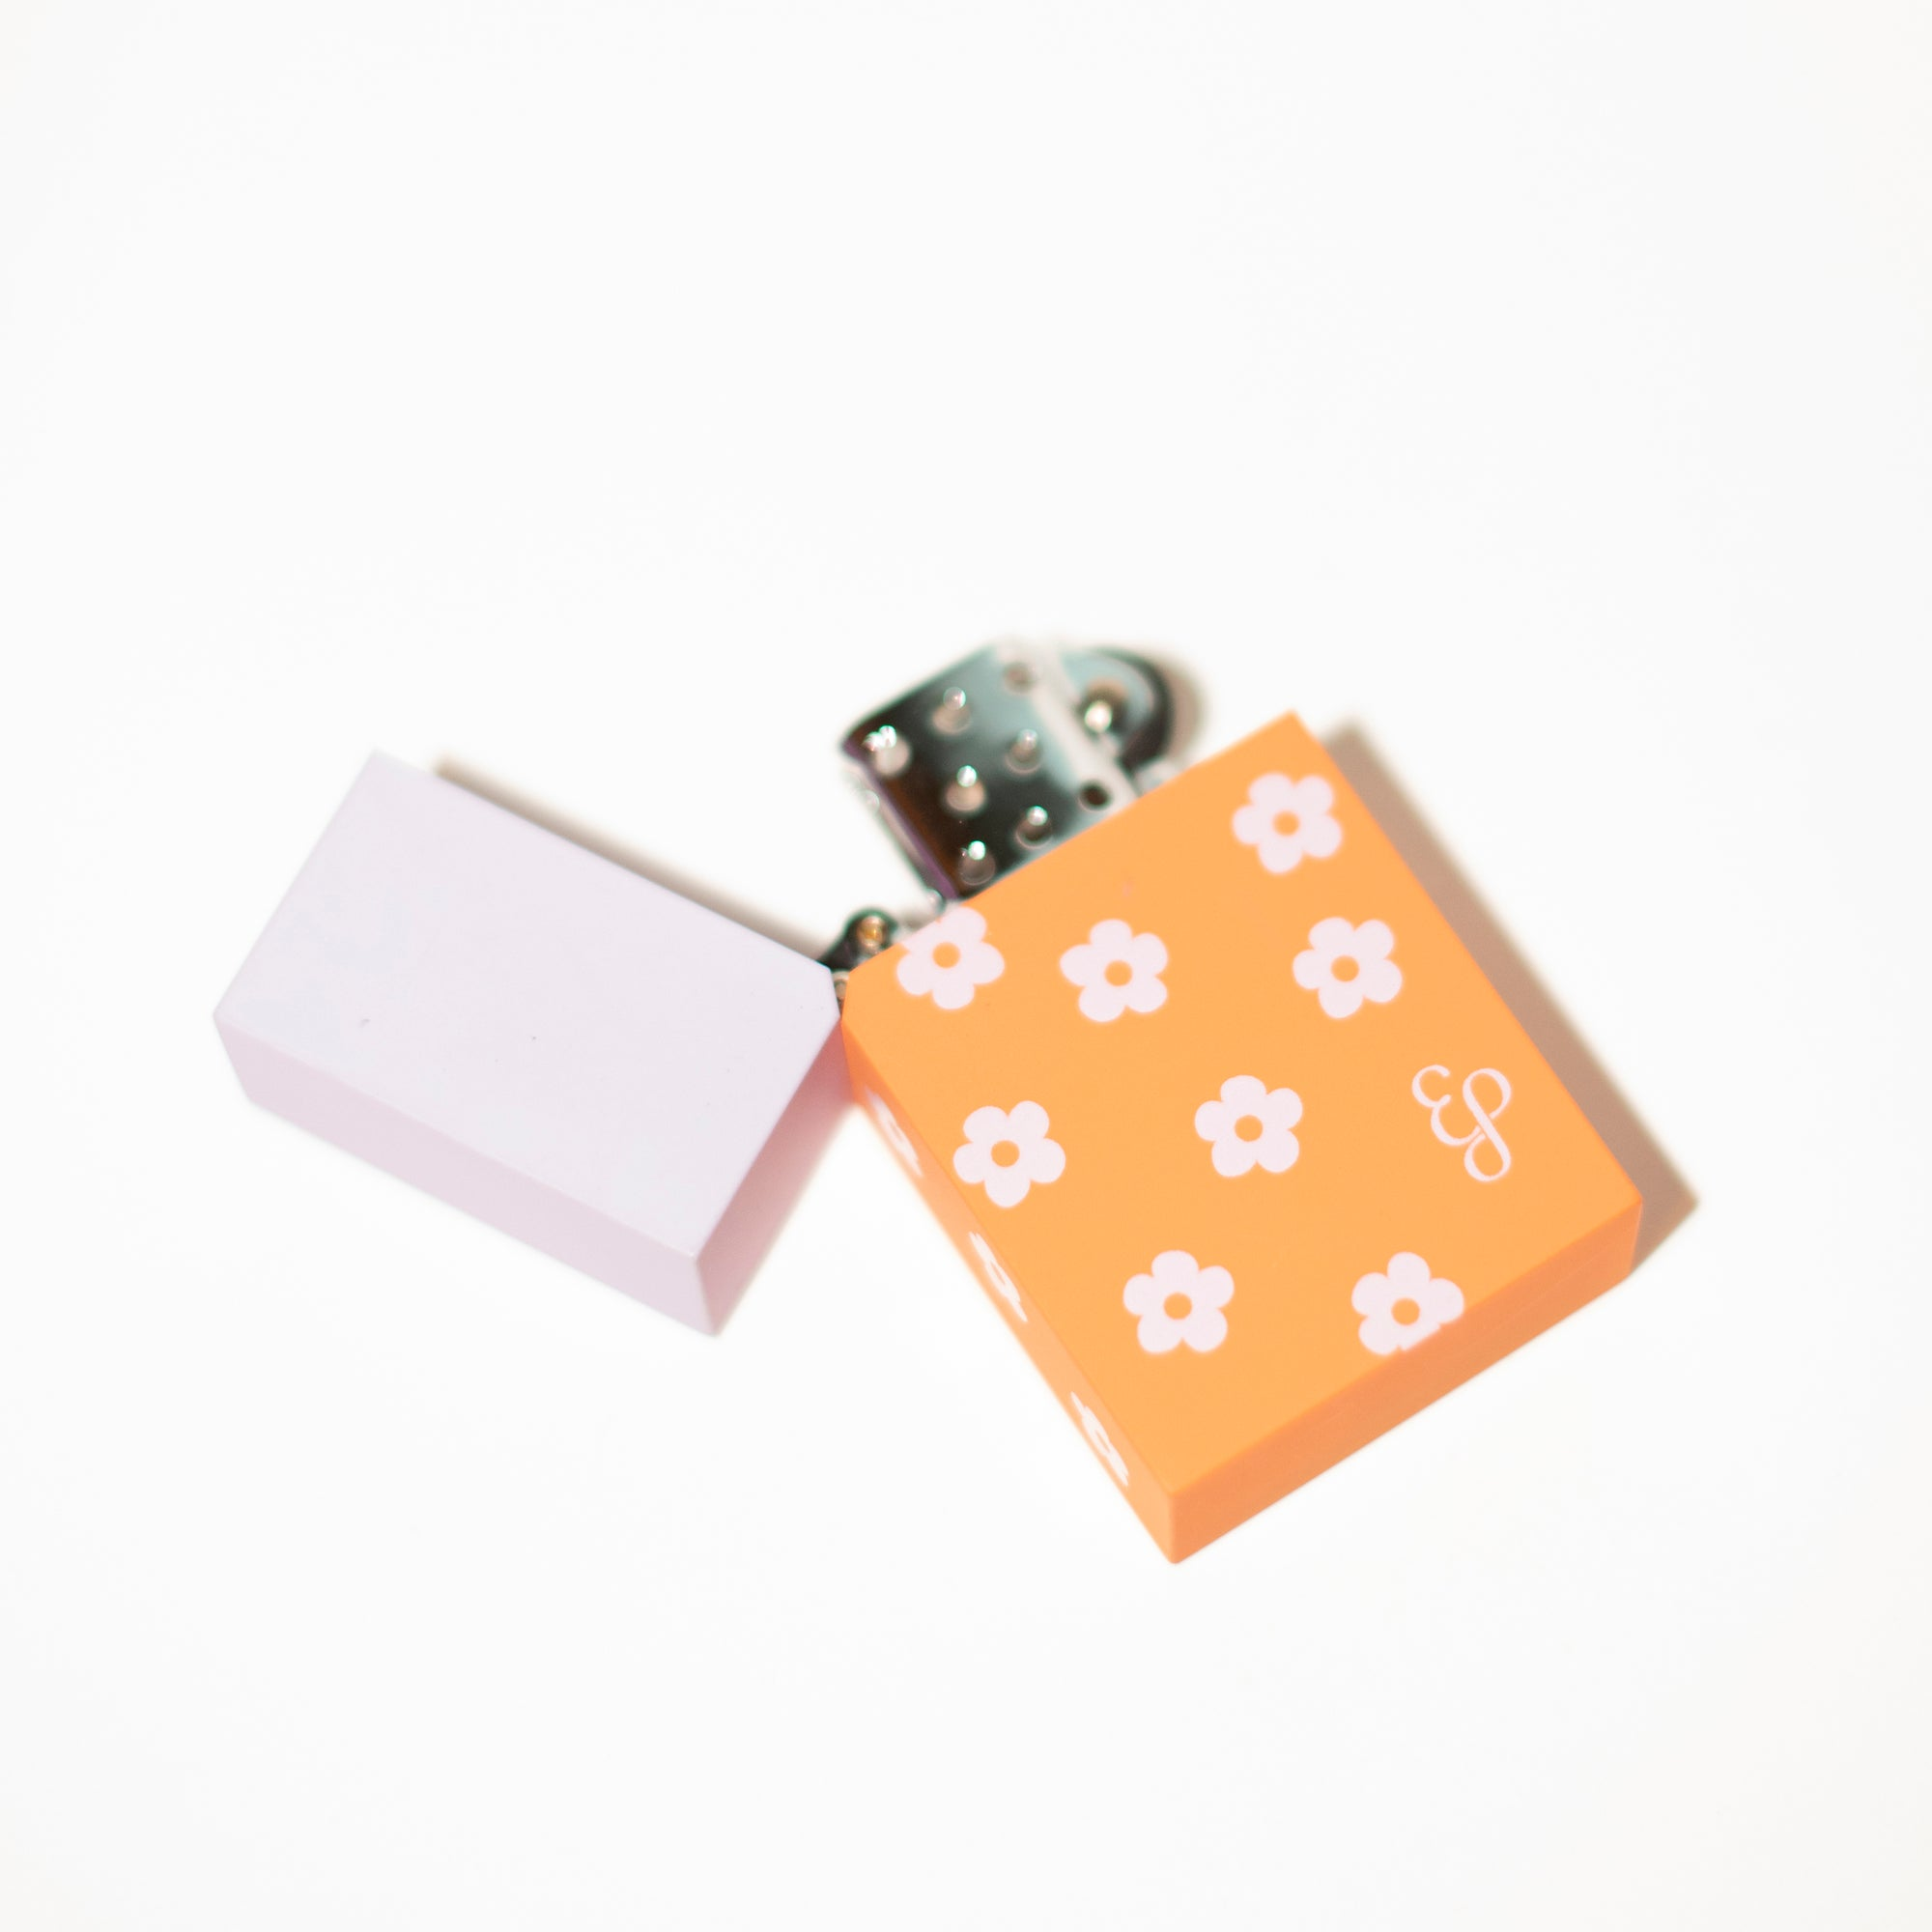 In Bloom Hard Edge Lighter